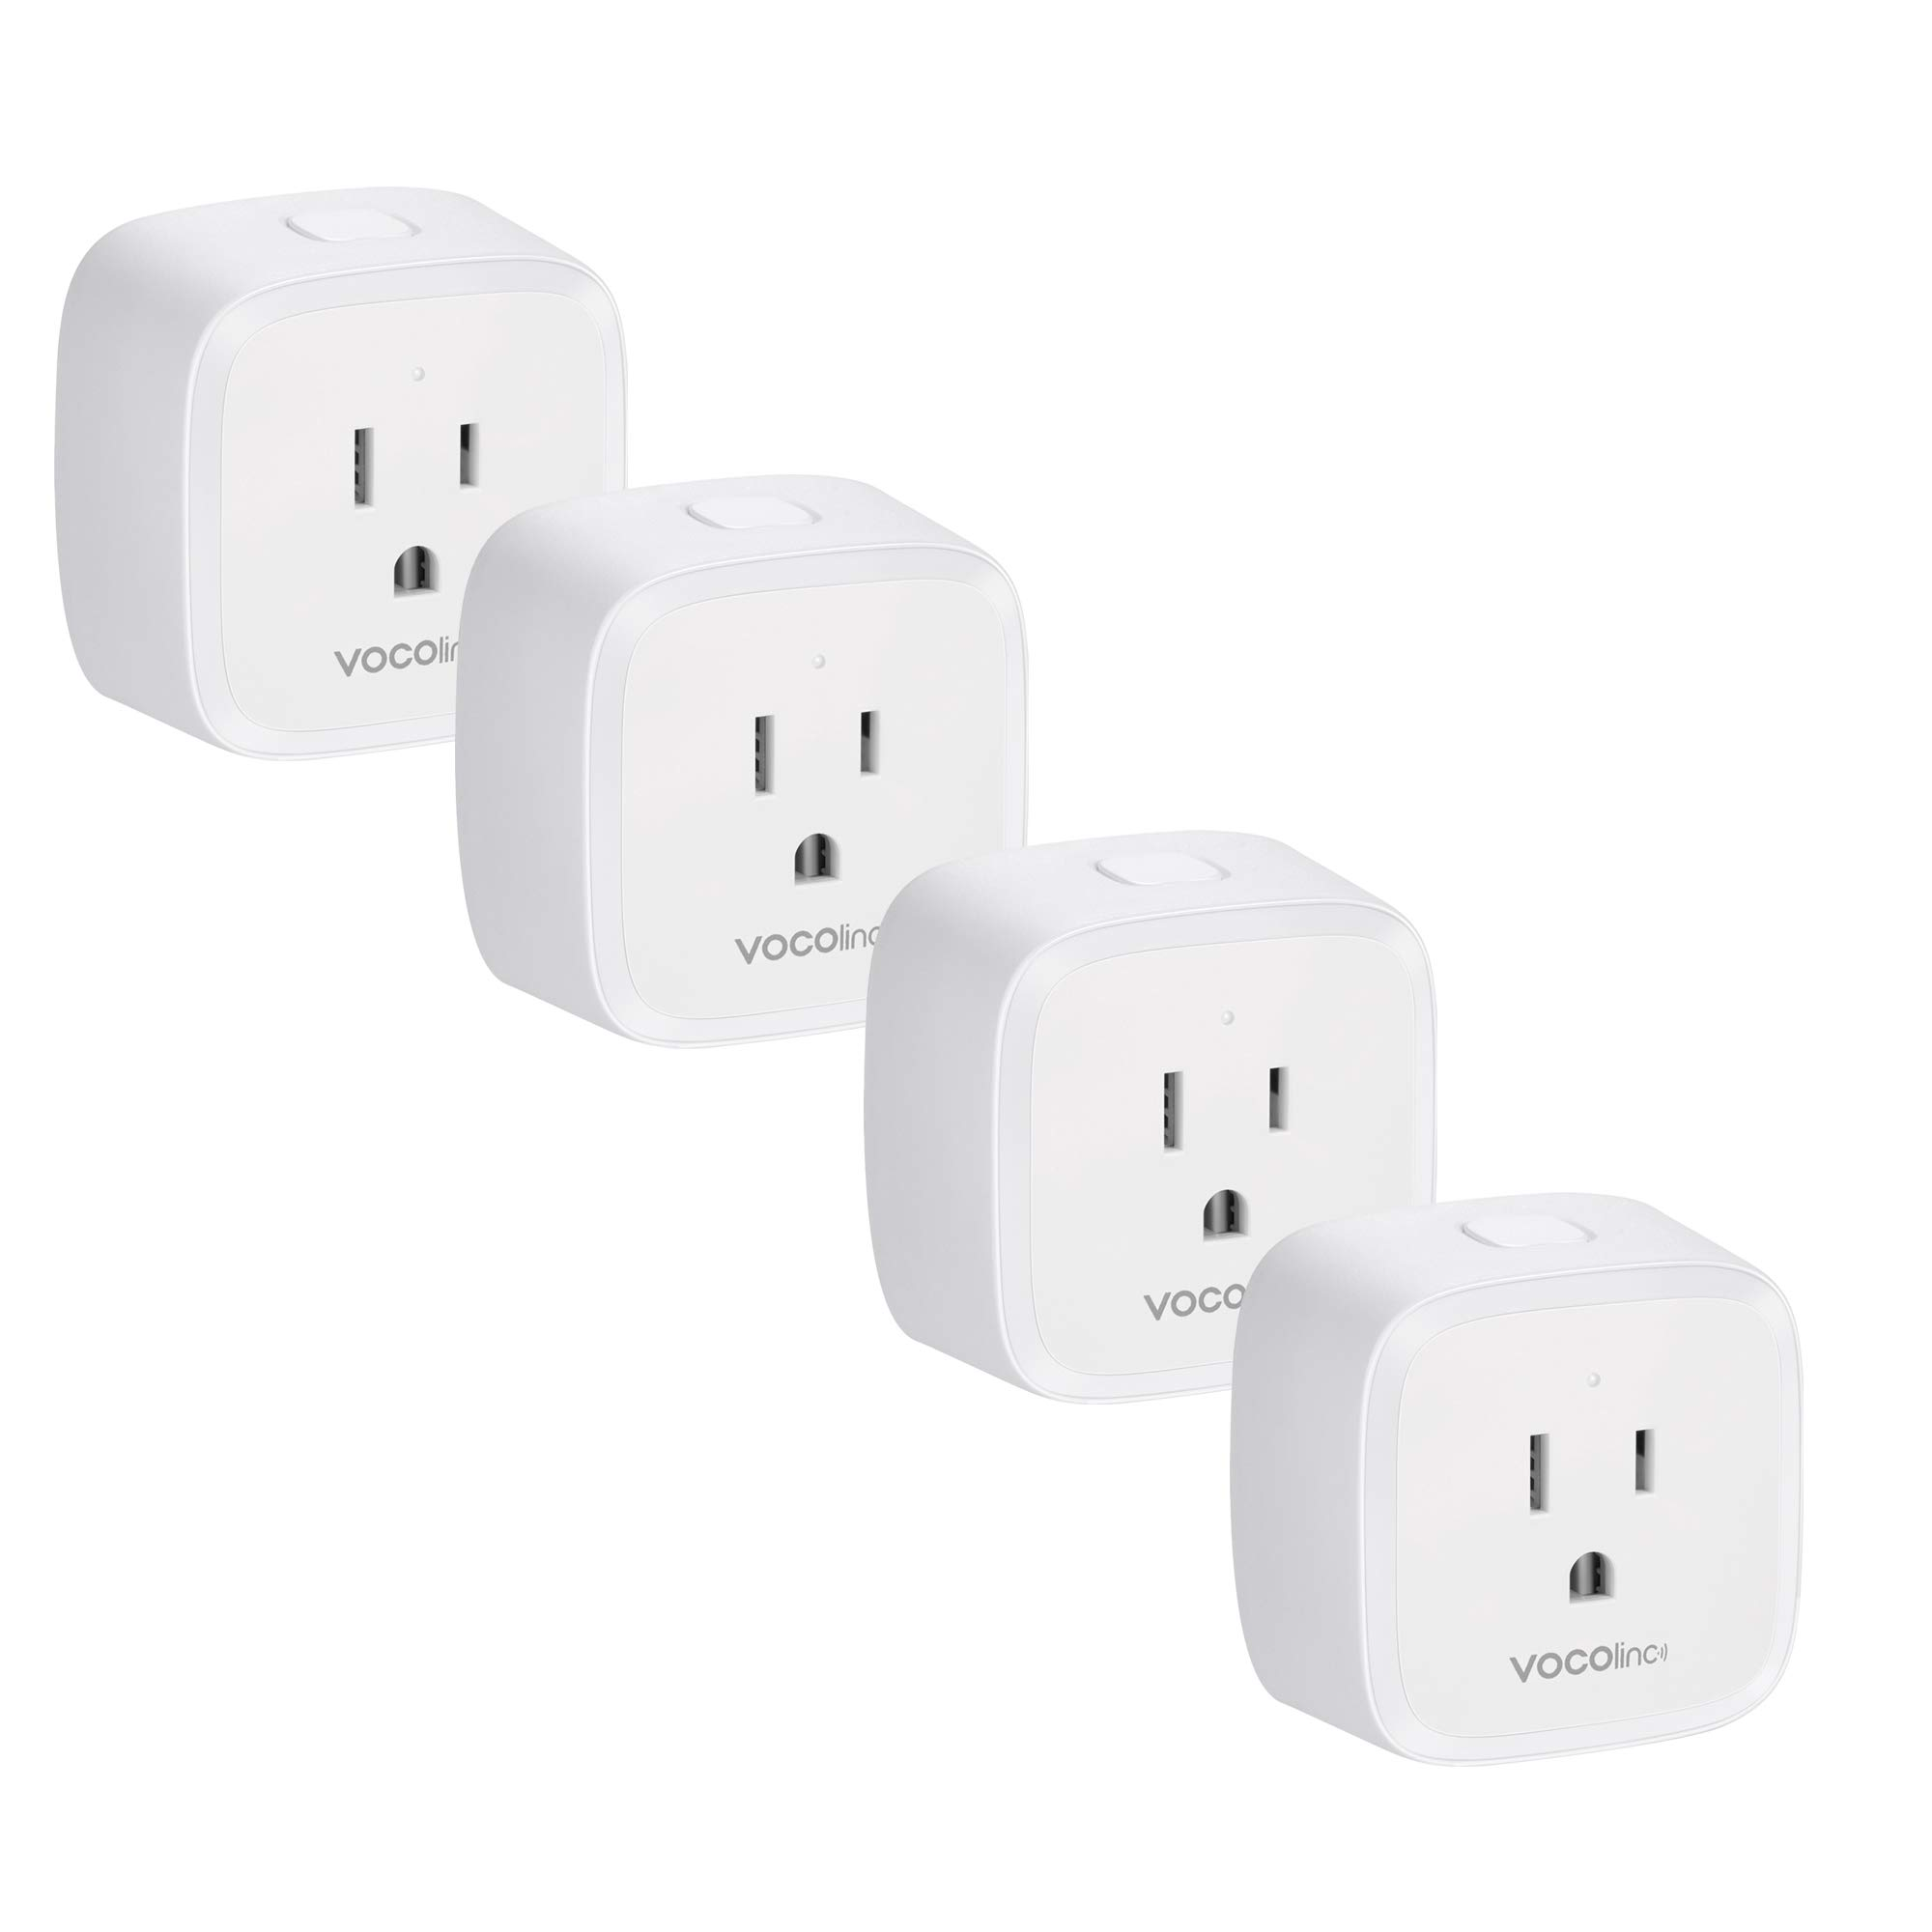 VOCOlinc Smart Wi-Fi Plug Outlet Socket, [Upgraded] Works with Apple HomeKit Alexa and Google Assistant Compatible, Power Meter, Adjustable Night Light, No Hub Required, 2.4GHz, PM1 (4 Pack)